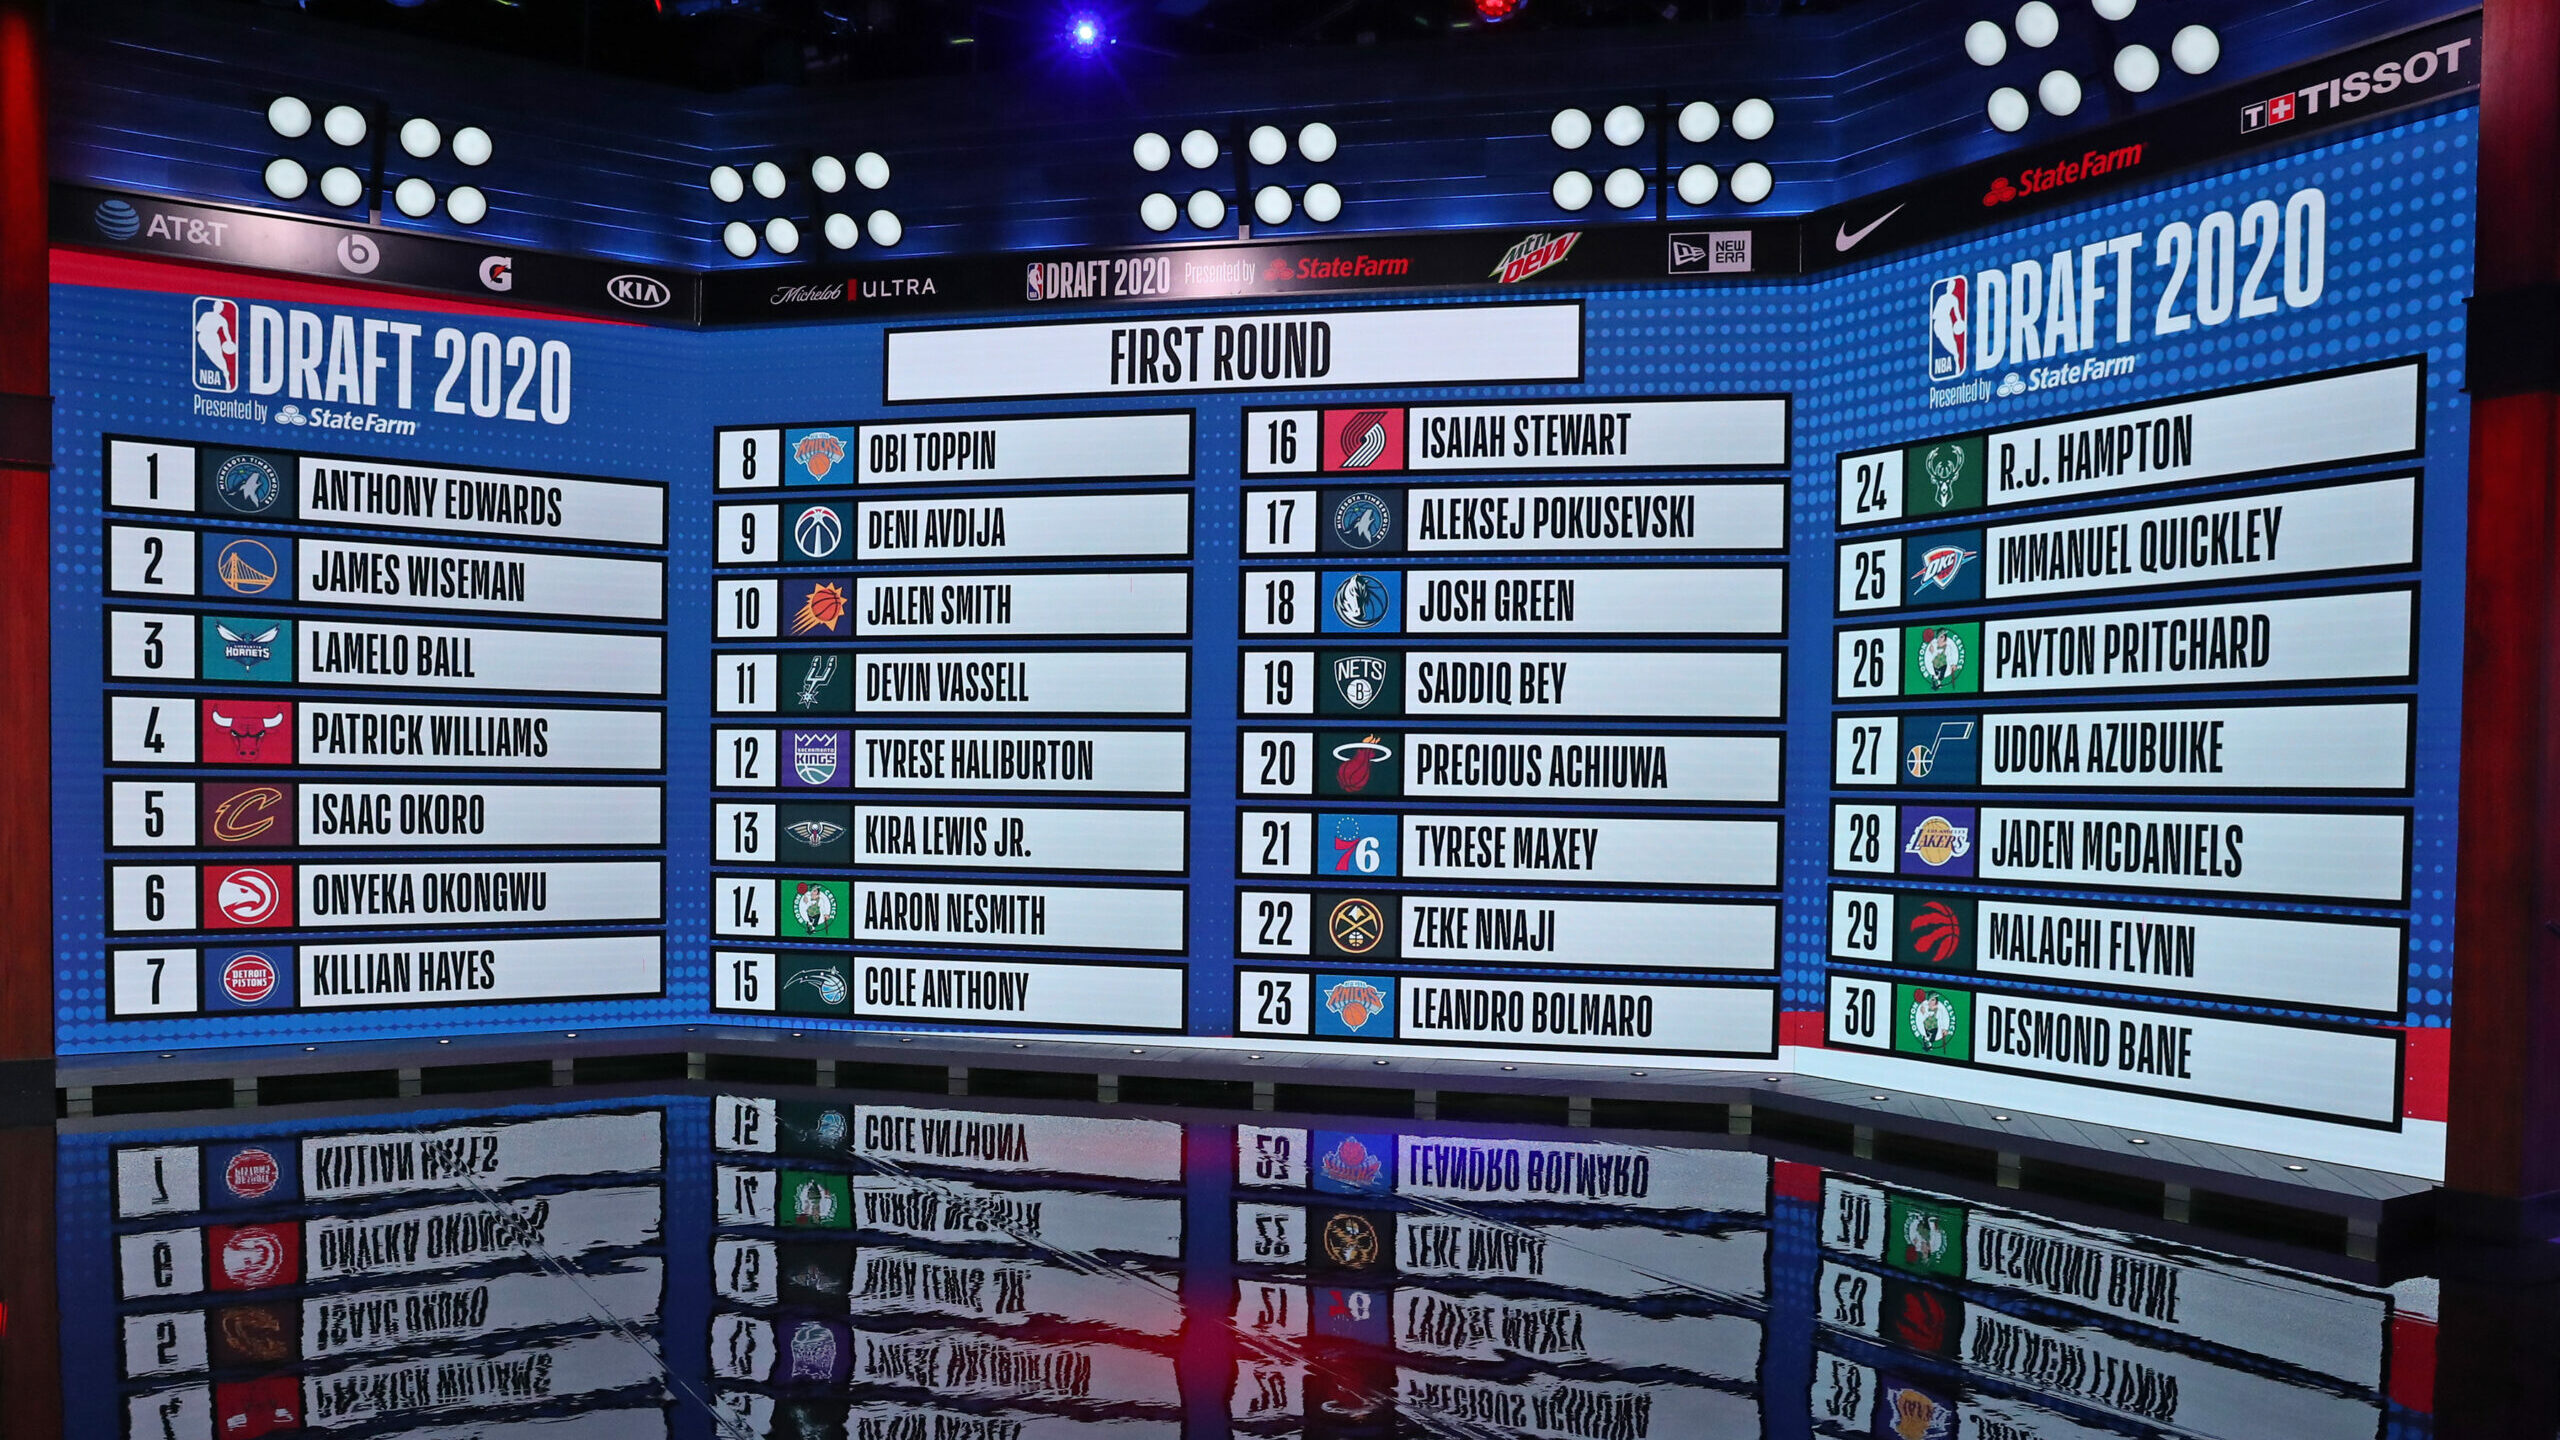 2020 NBA Draft results: Picks 1-60